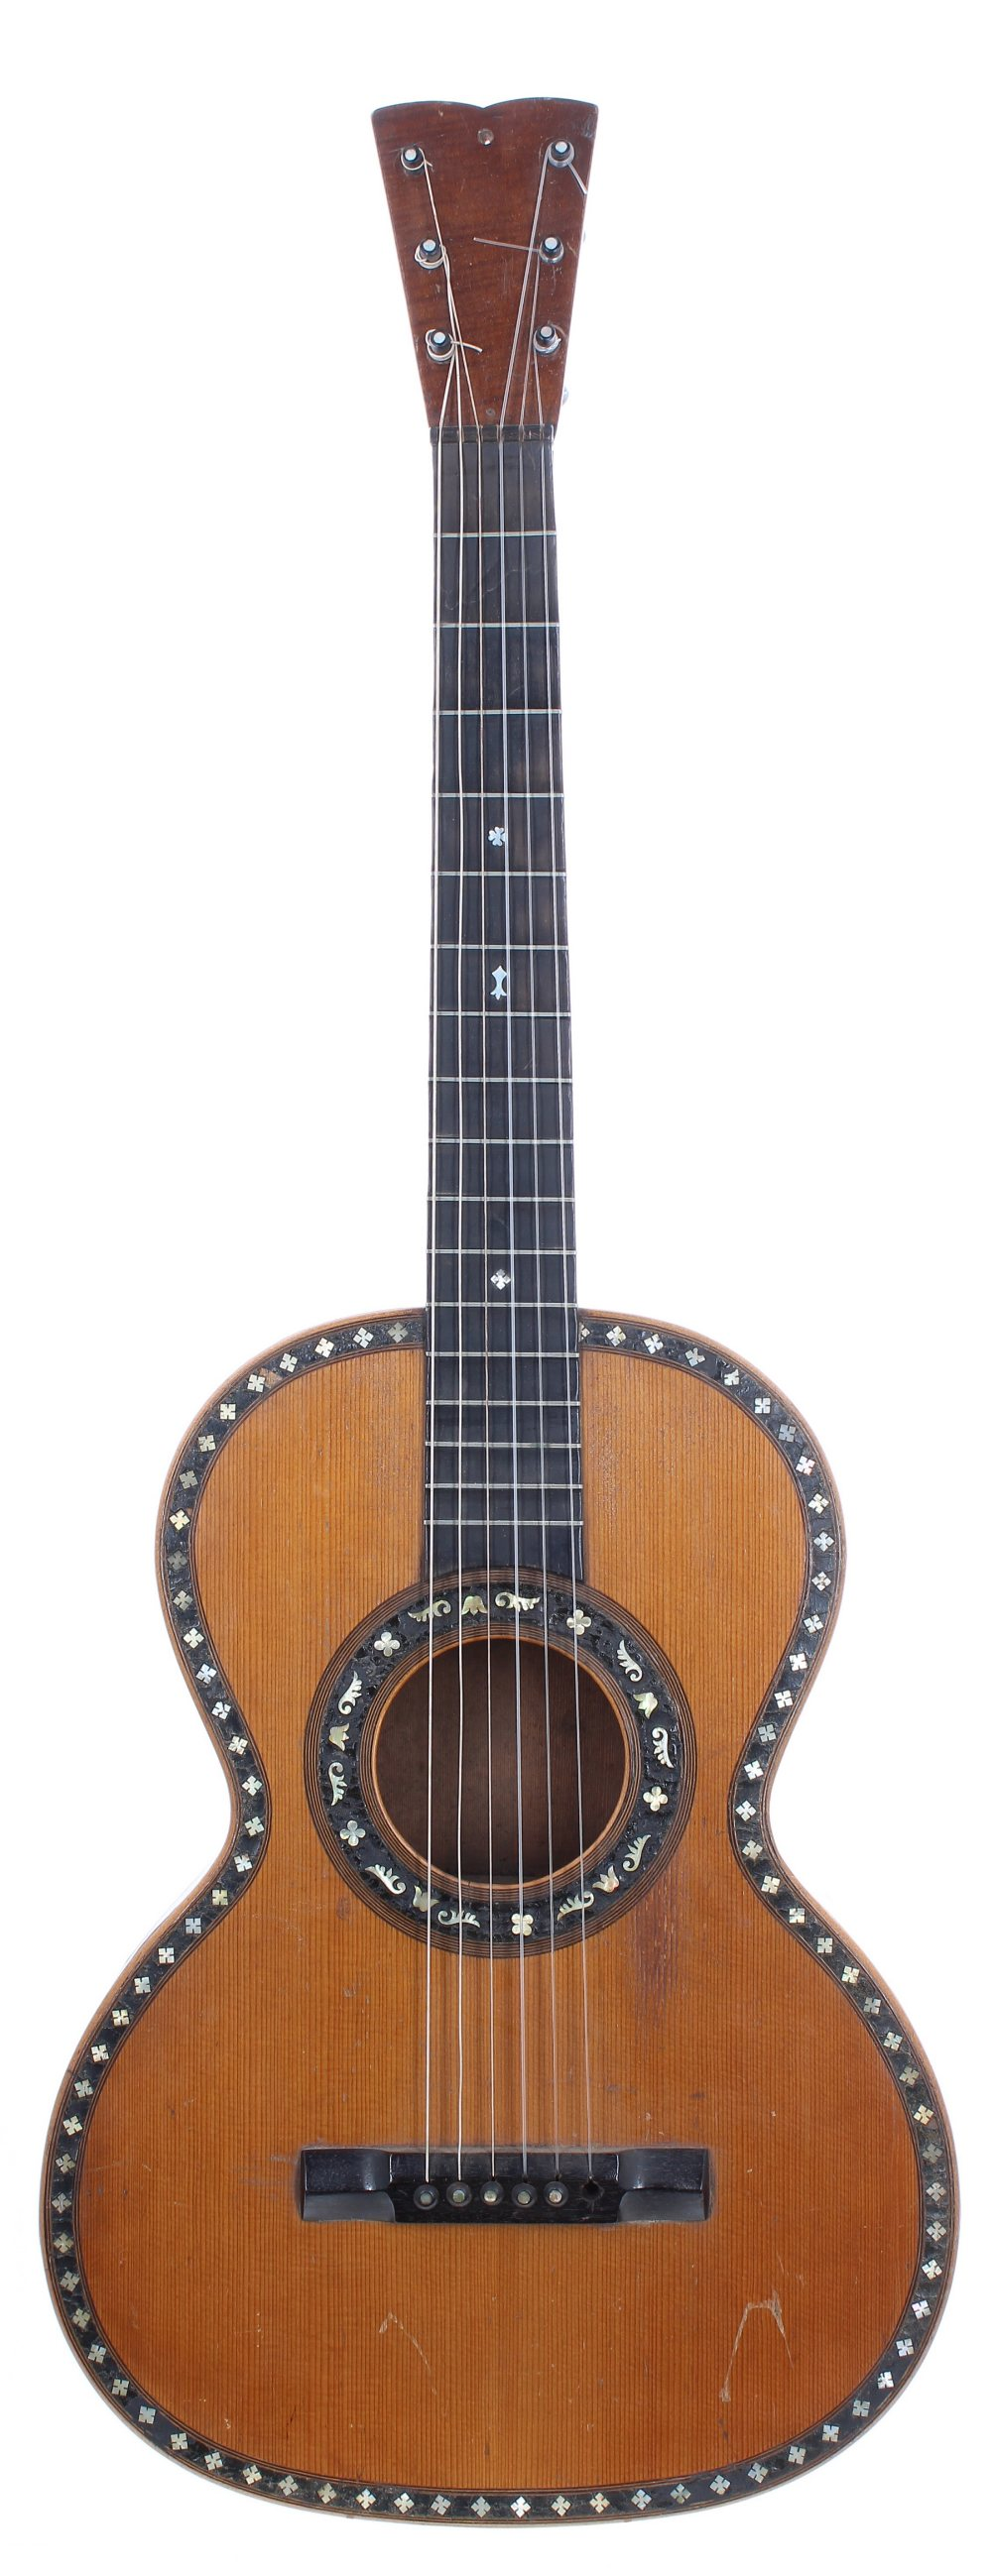 Mid 19th century German parlour guitar; Back and sides: rosewood, back with inlaid foliate